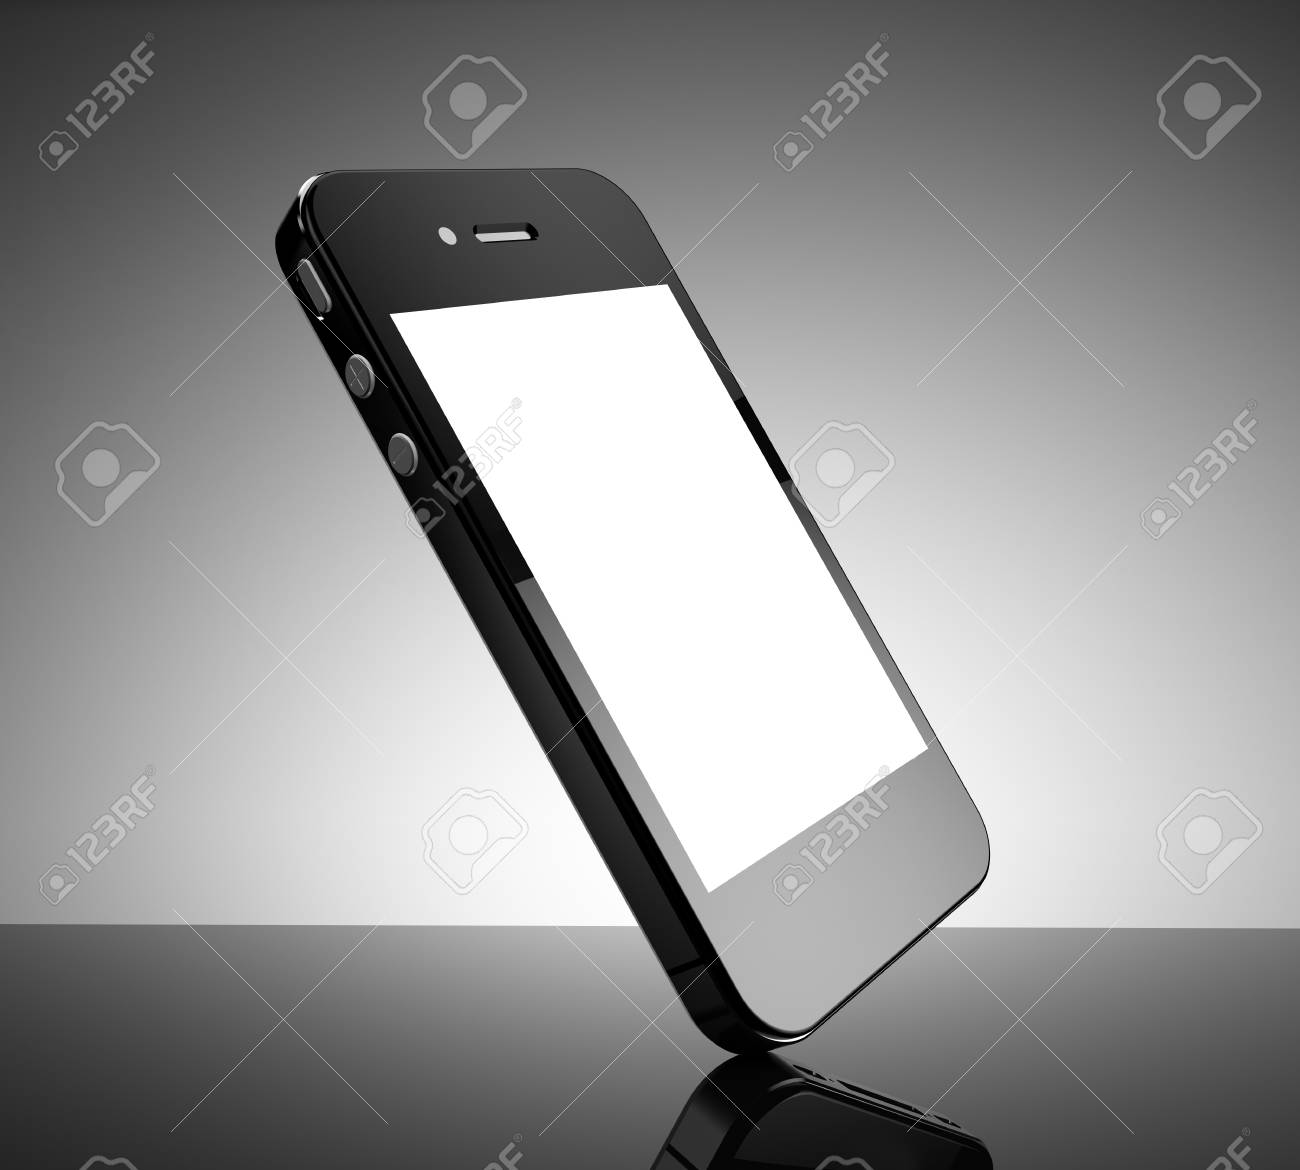 Realistic black smartphone with a white screen Stock Photo - 21352652